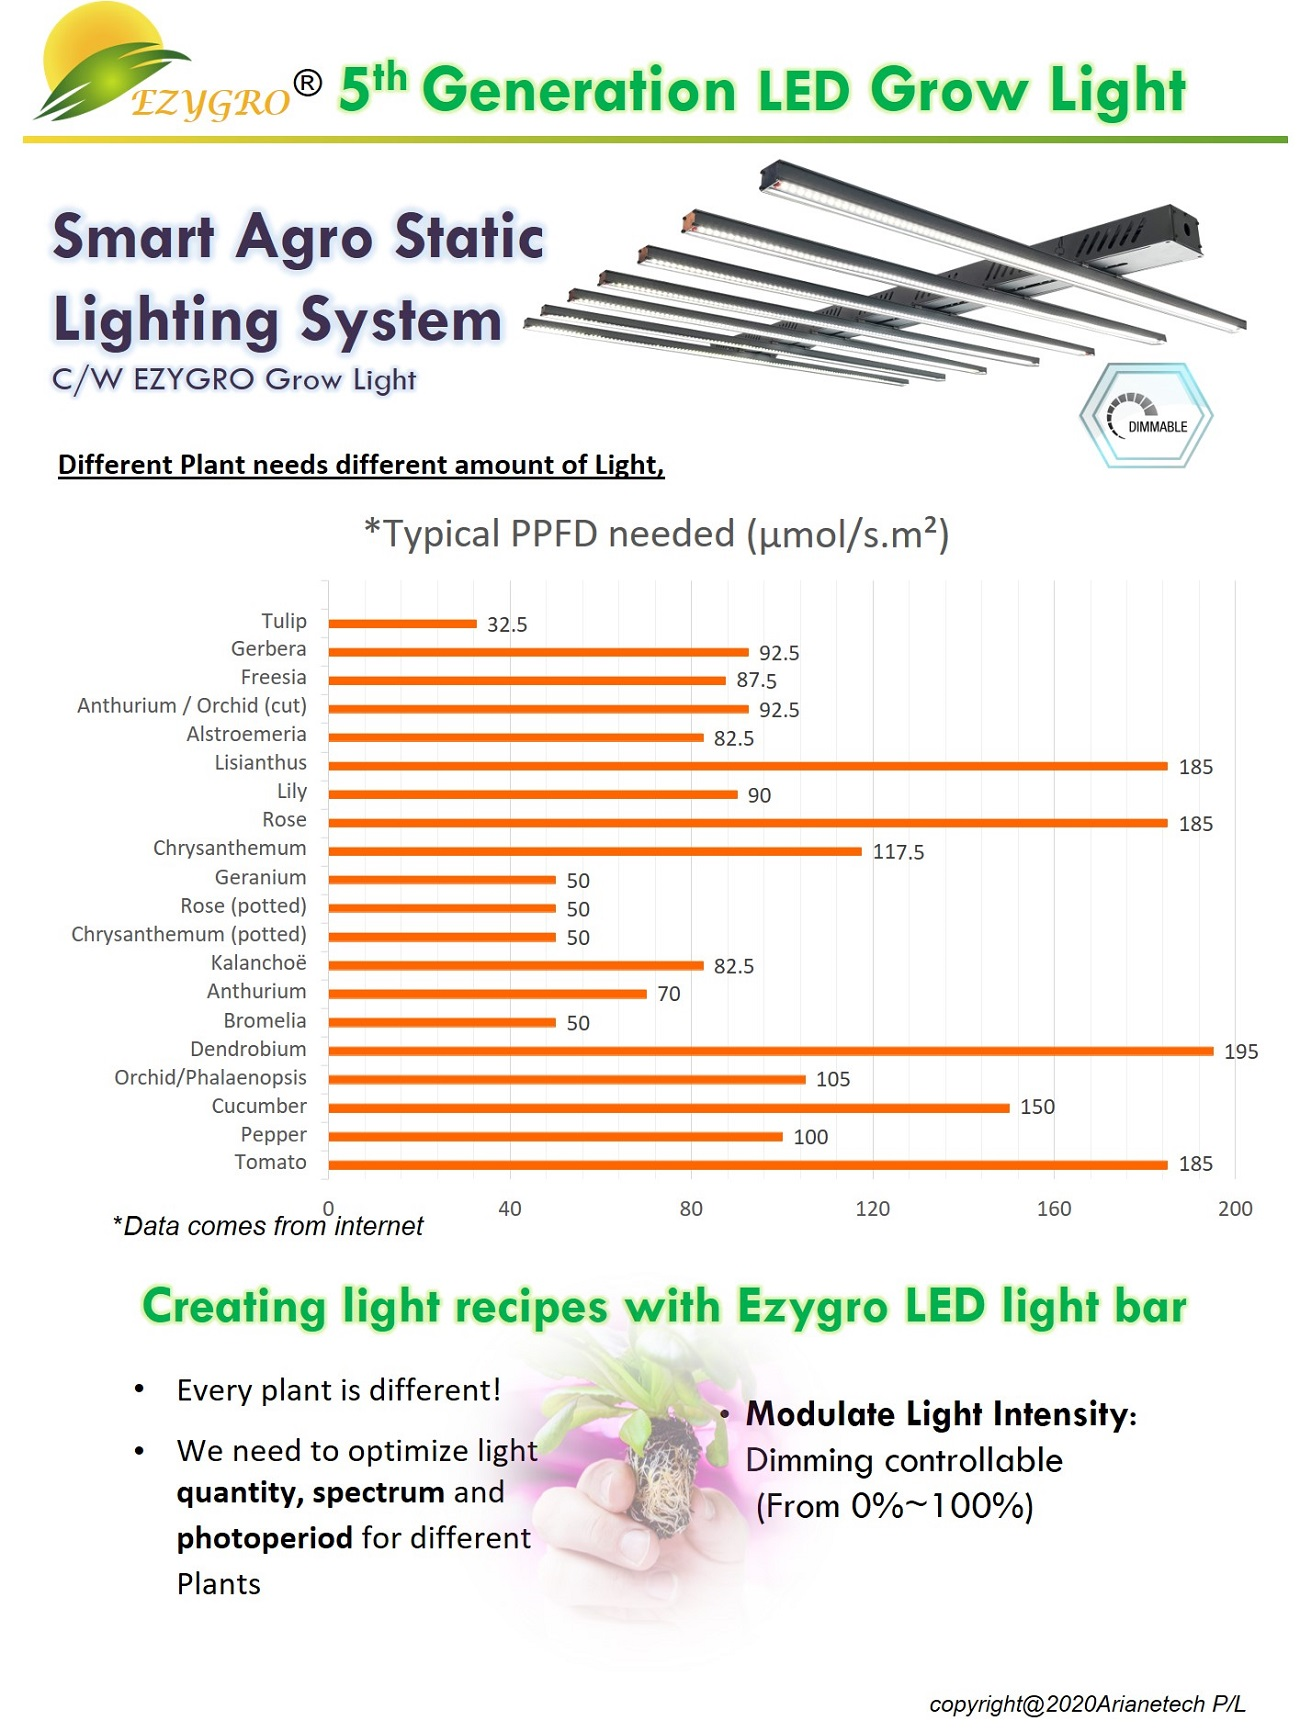 5 generation ezygro led grow light bar for crops in vertical farming 7